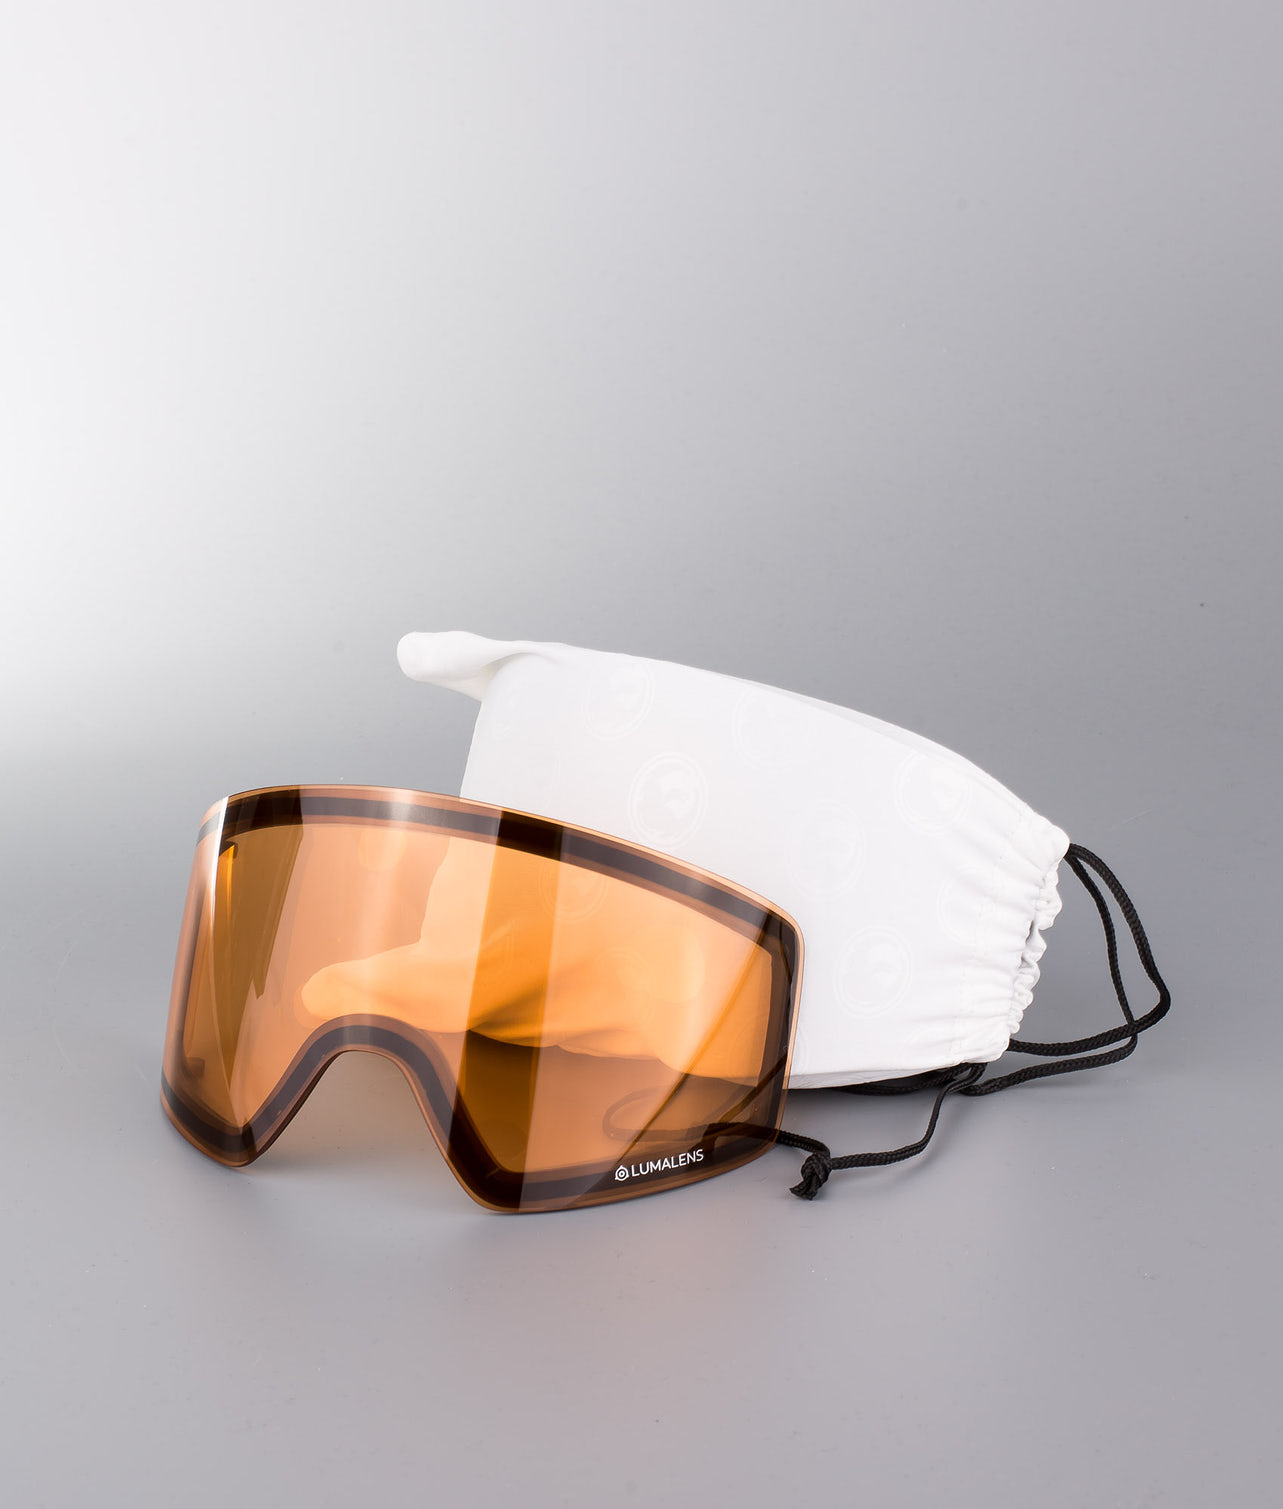 Buy PXV Ski Goggle from Dragon at Ridestore.com - Always free shipping, free returns and 30 days money back guarantee